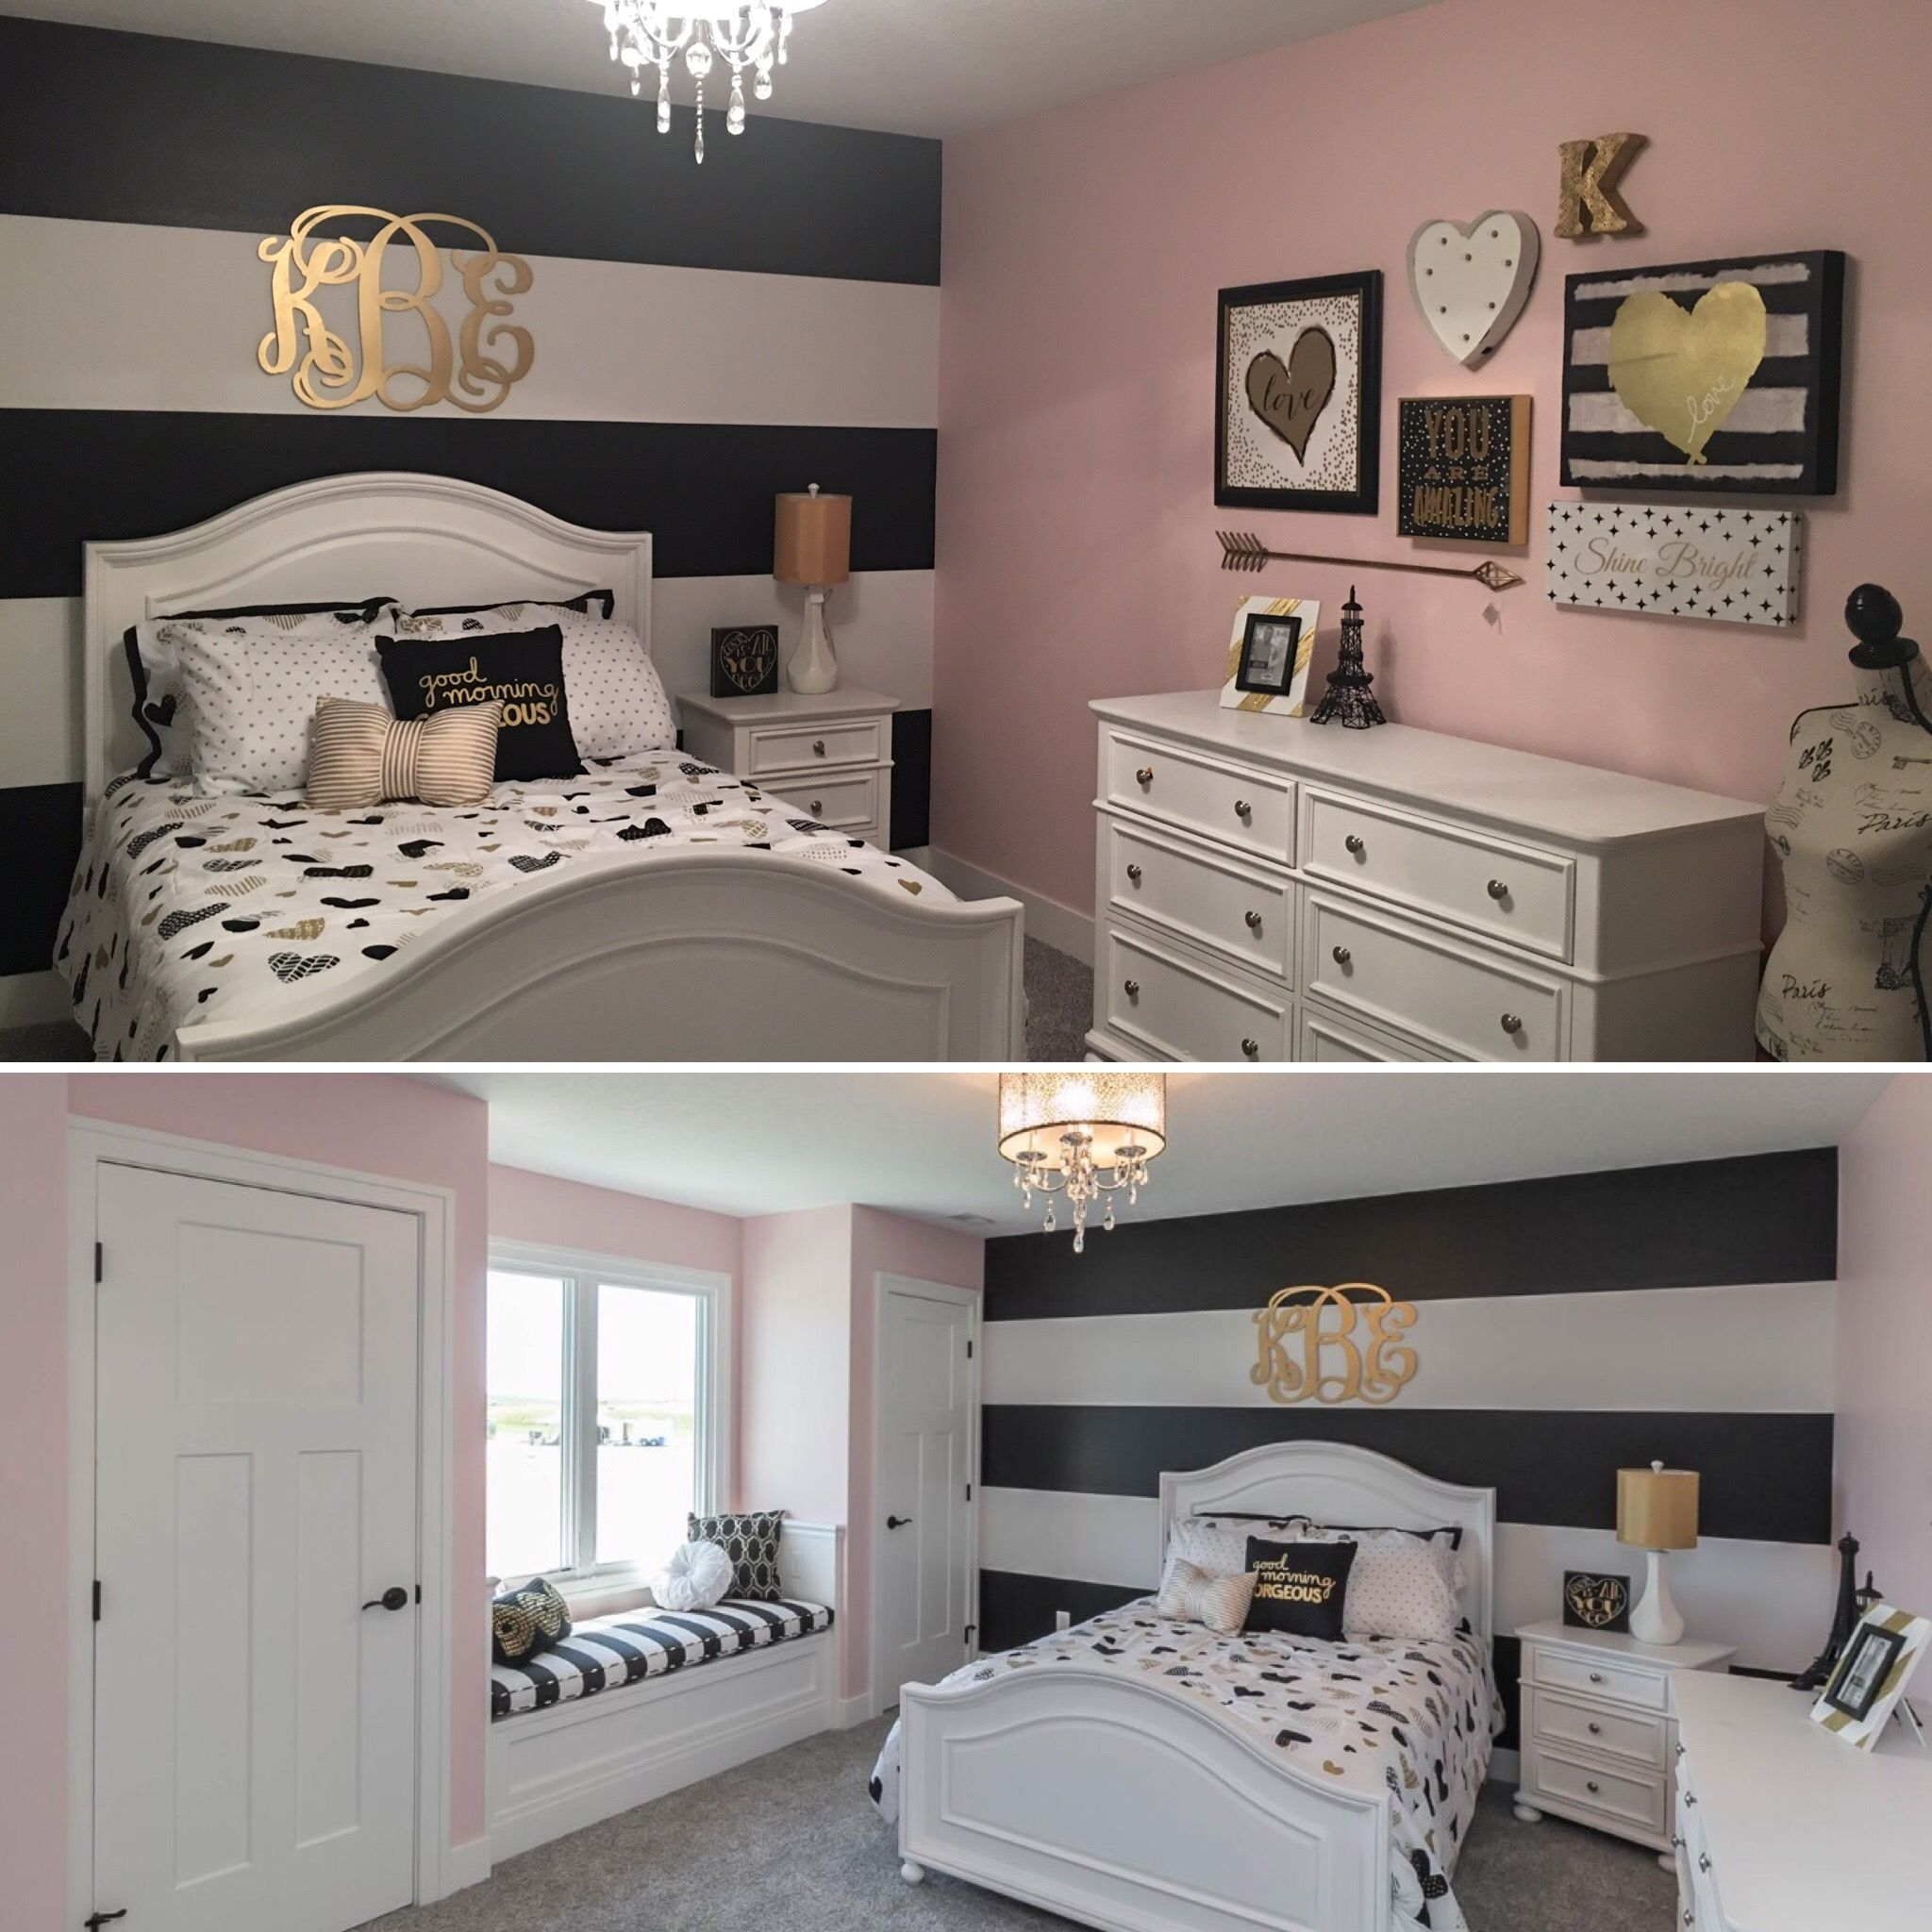 Most Beautifull Deco Paint Complete Bed Set: Girls Room With Black And Gold Accents. All Very